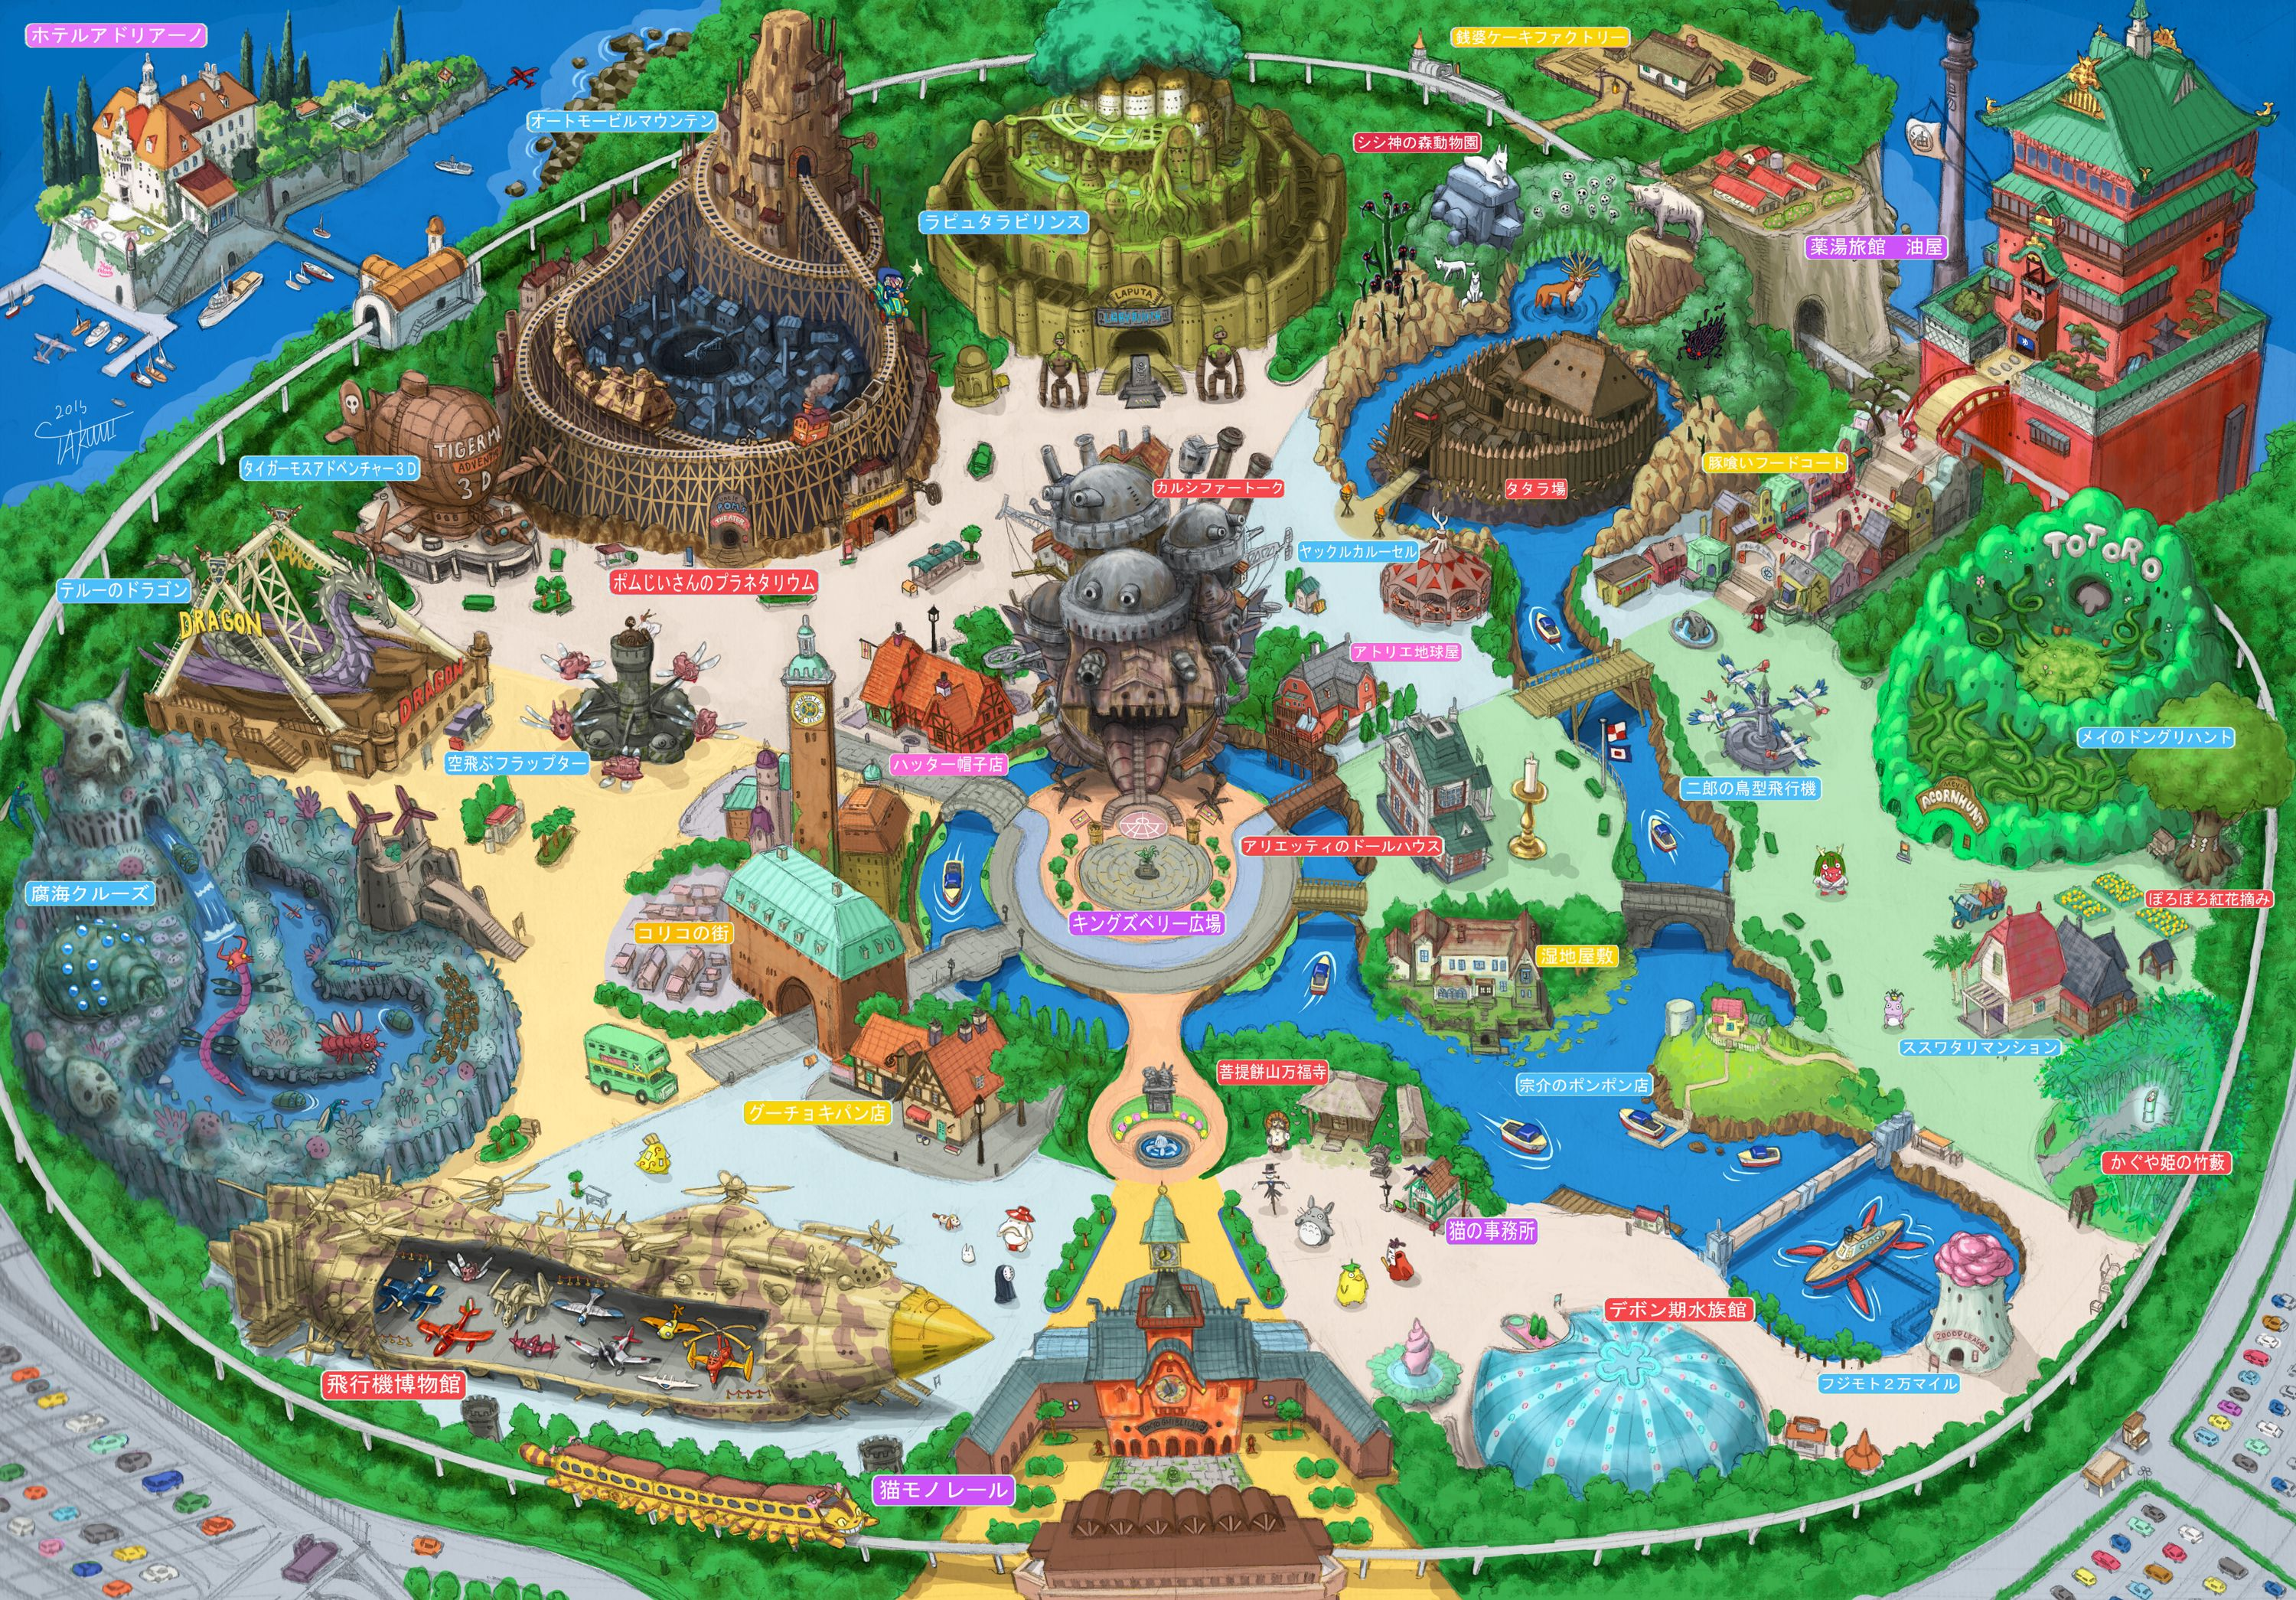 This amazingly detailed theme park map is what tokyo for 3d cuisine boe